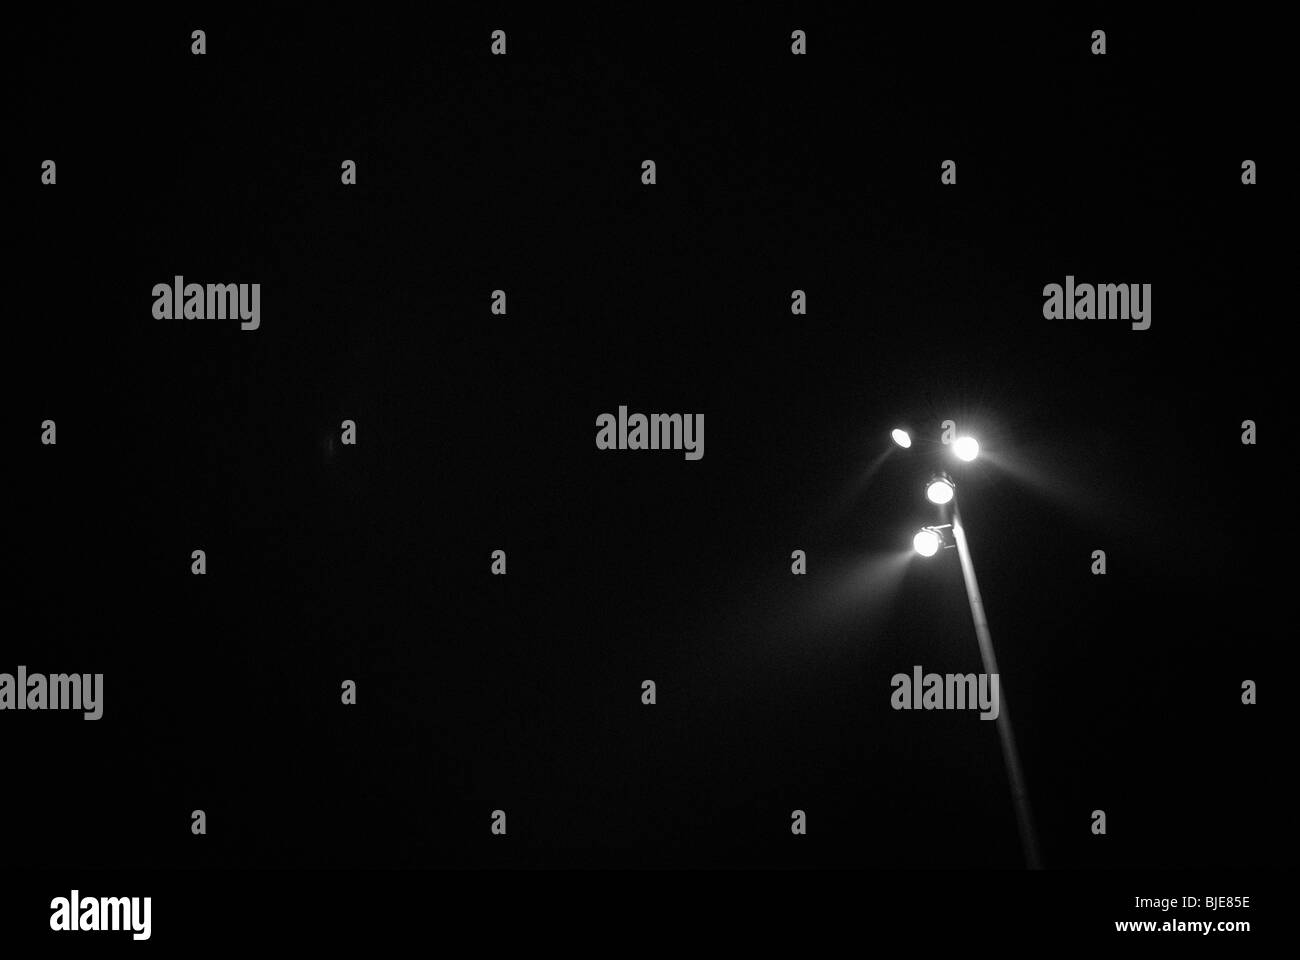 LIGHTS IN THE DARKNESS - Stock Image